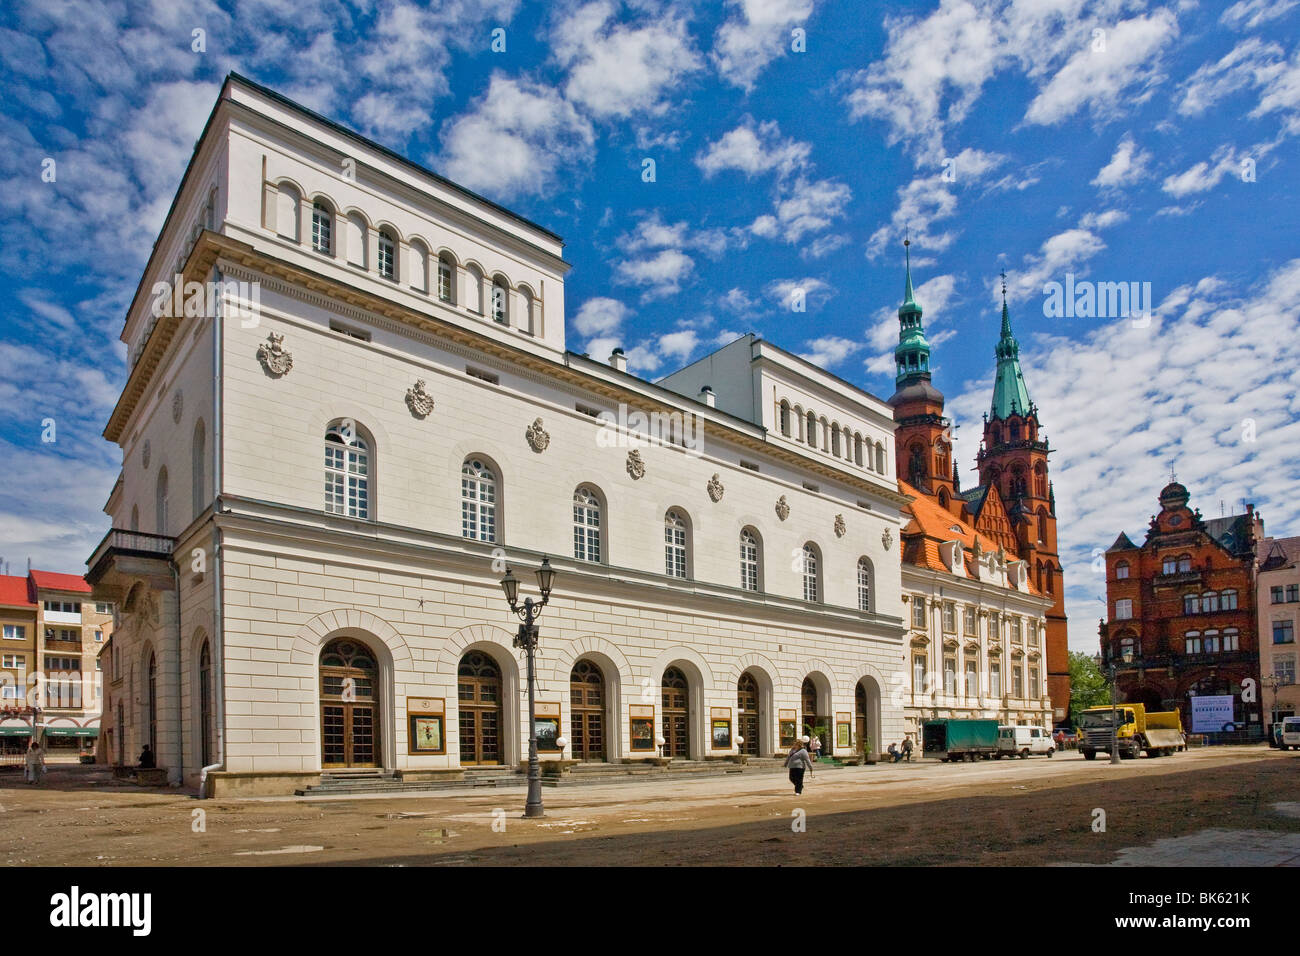 Neo-Renaissance building of the theater in Legnica, Poland - Stock Image